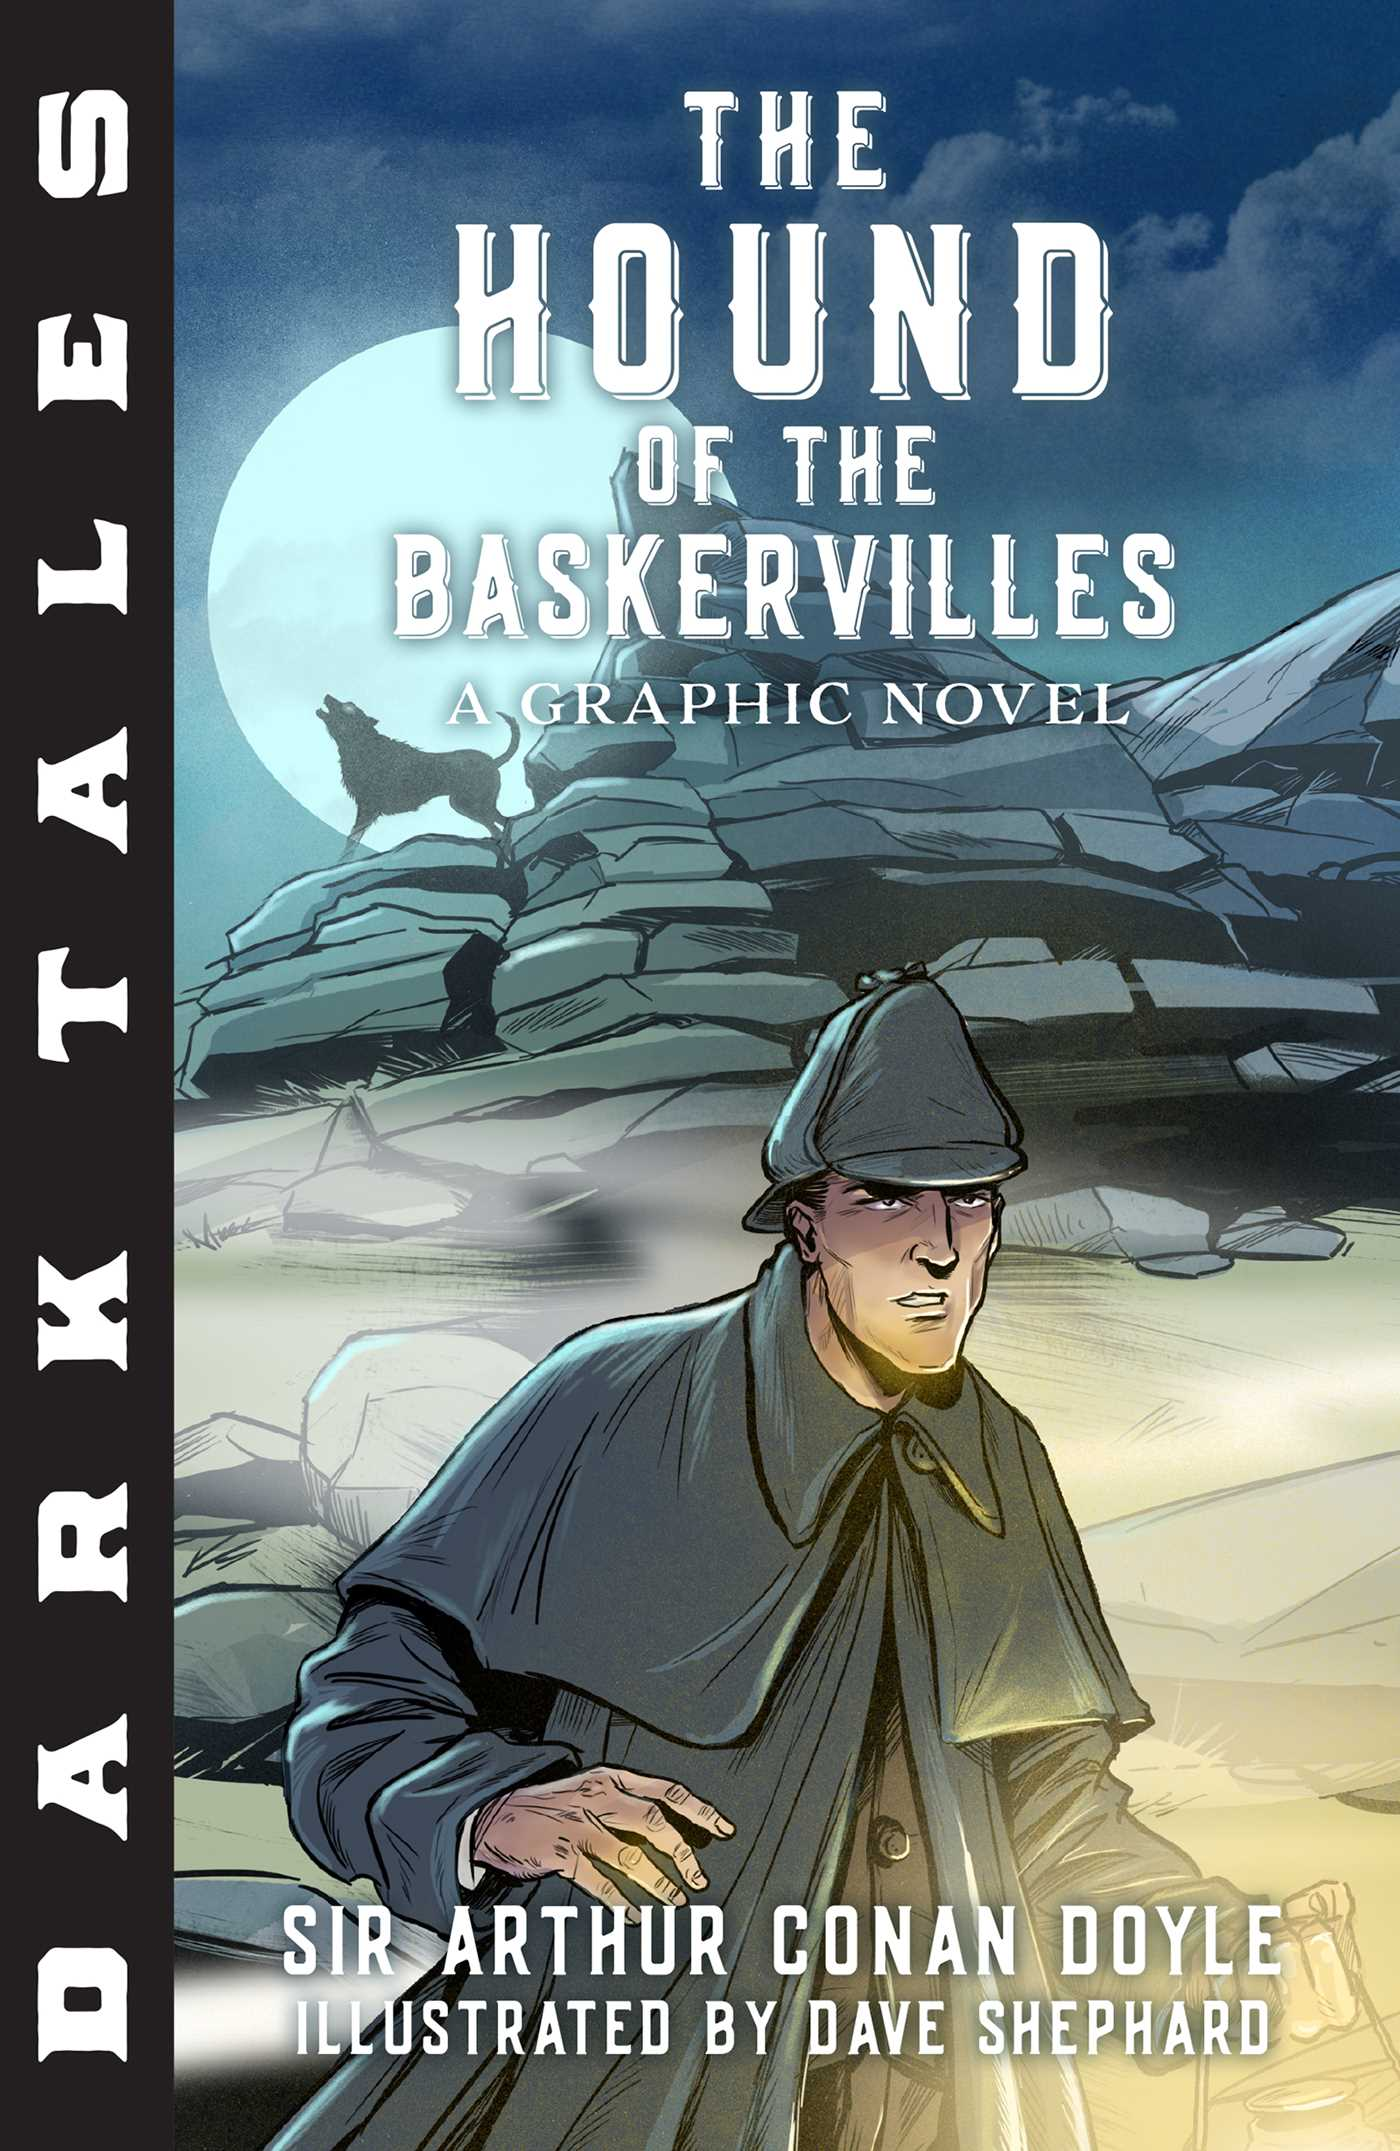 Dark tales the hound of the baskervilles 9781684121007 hr